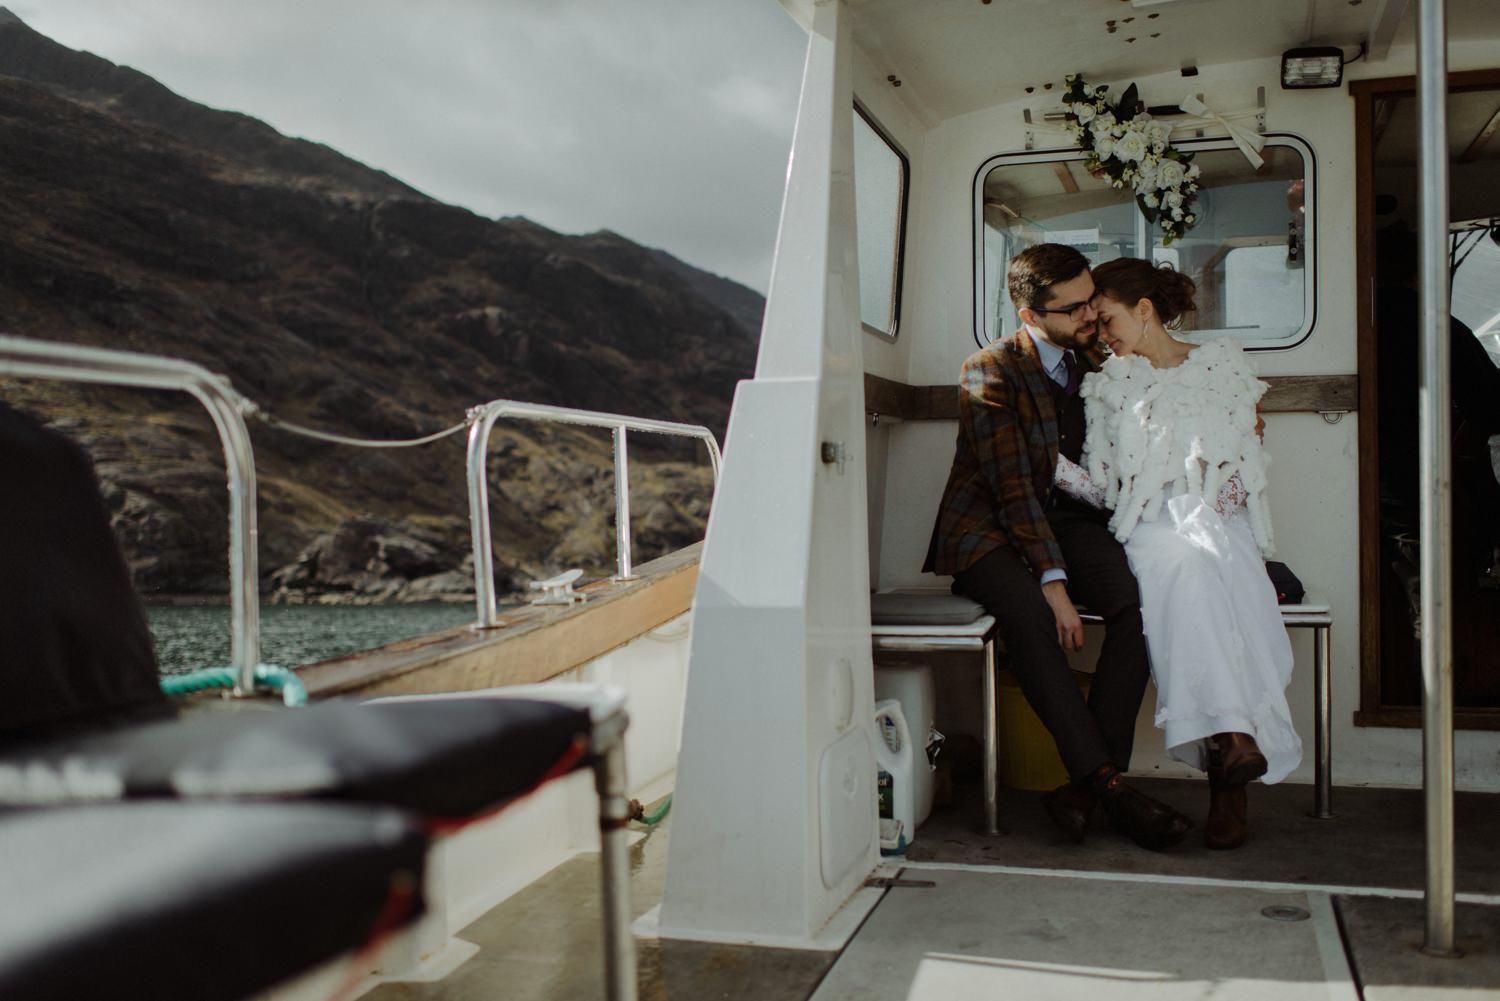 lsle of Skye elopement photographer_0398